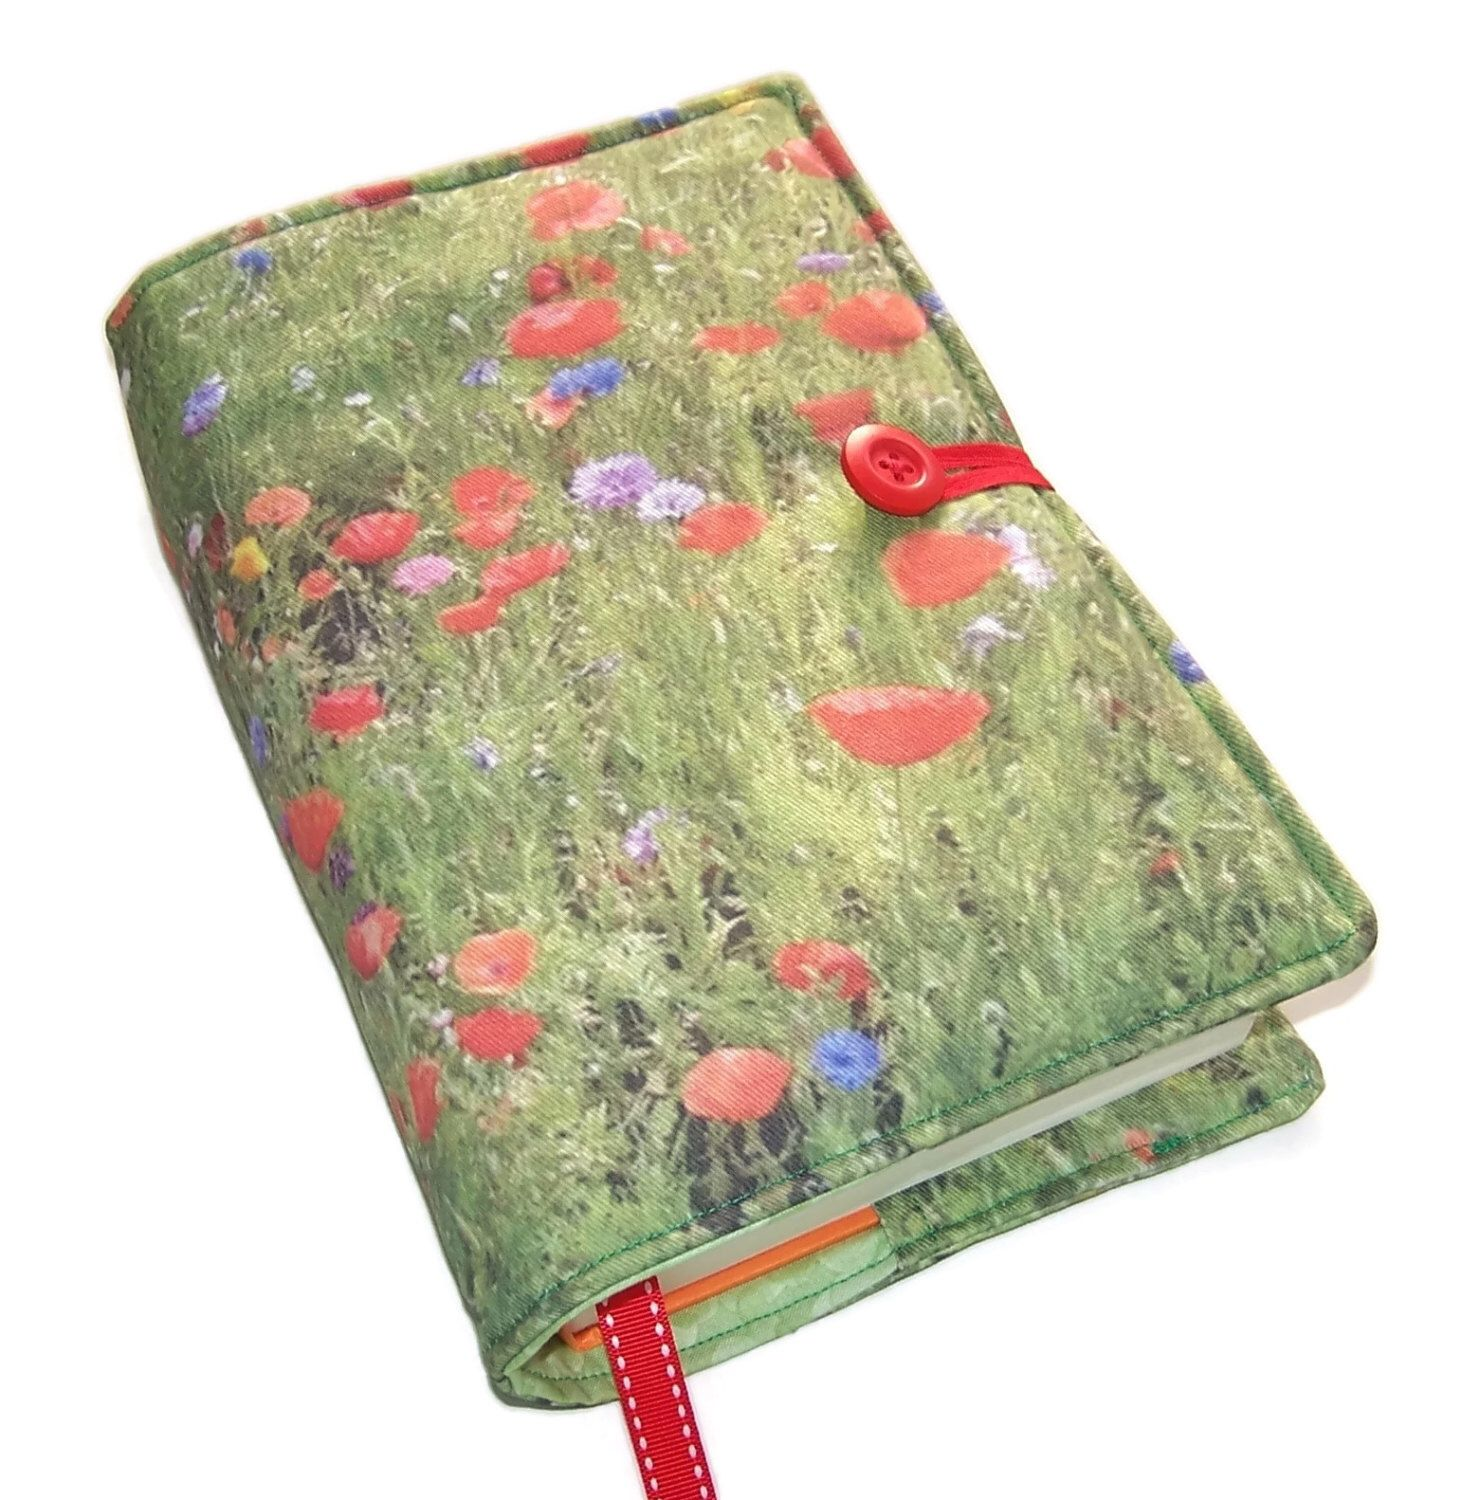 Handmade Large Bible Cover, Wild Flowers Poppy, Book Cover